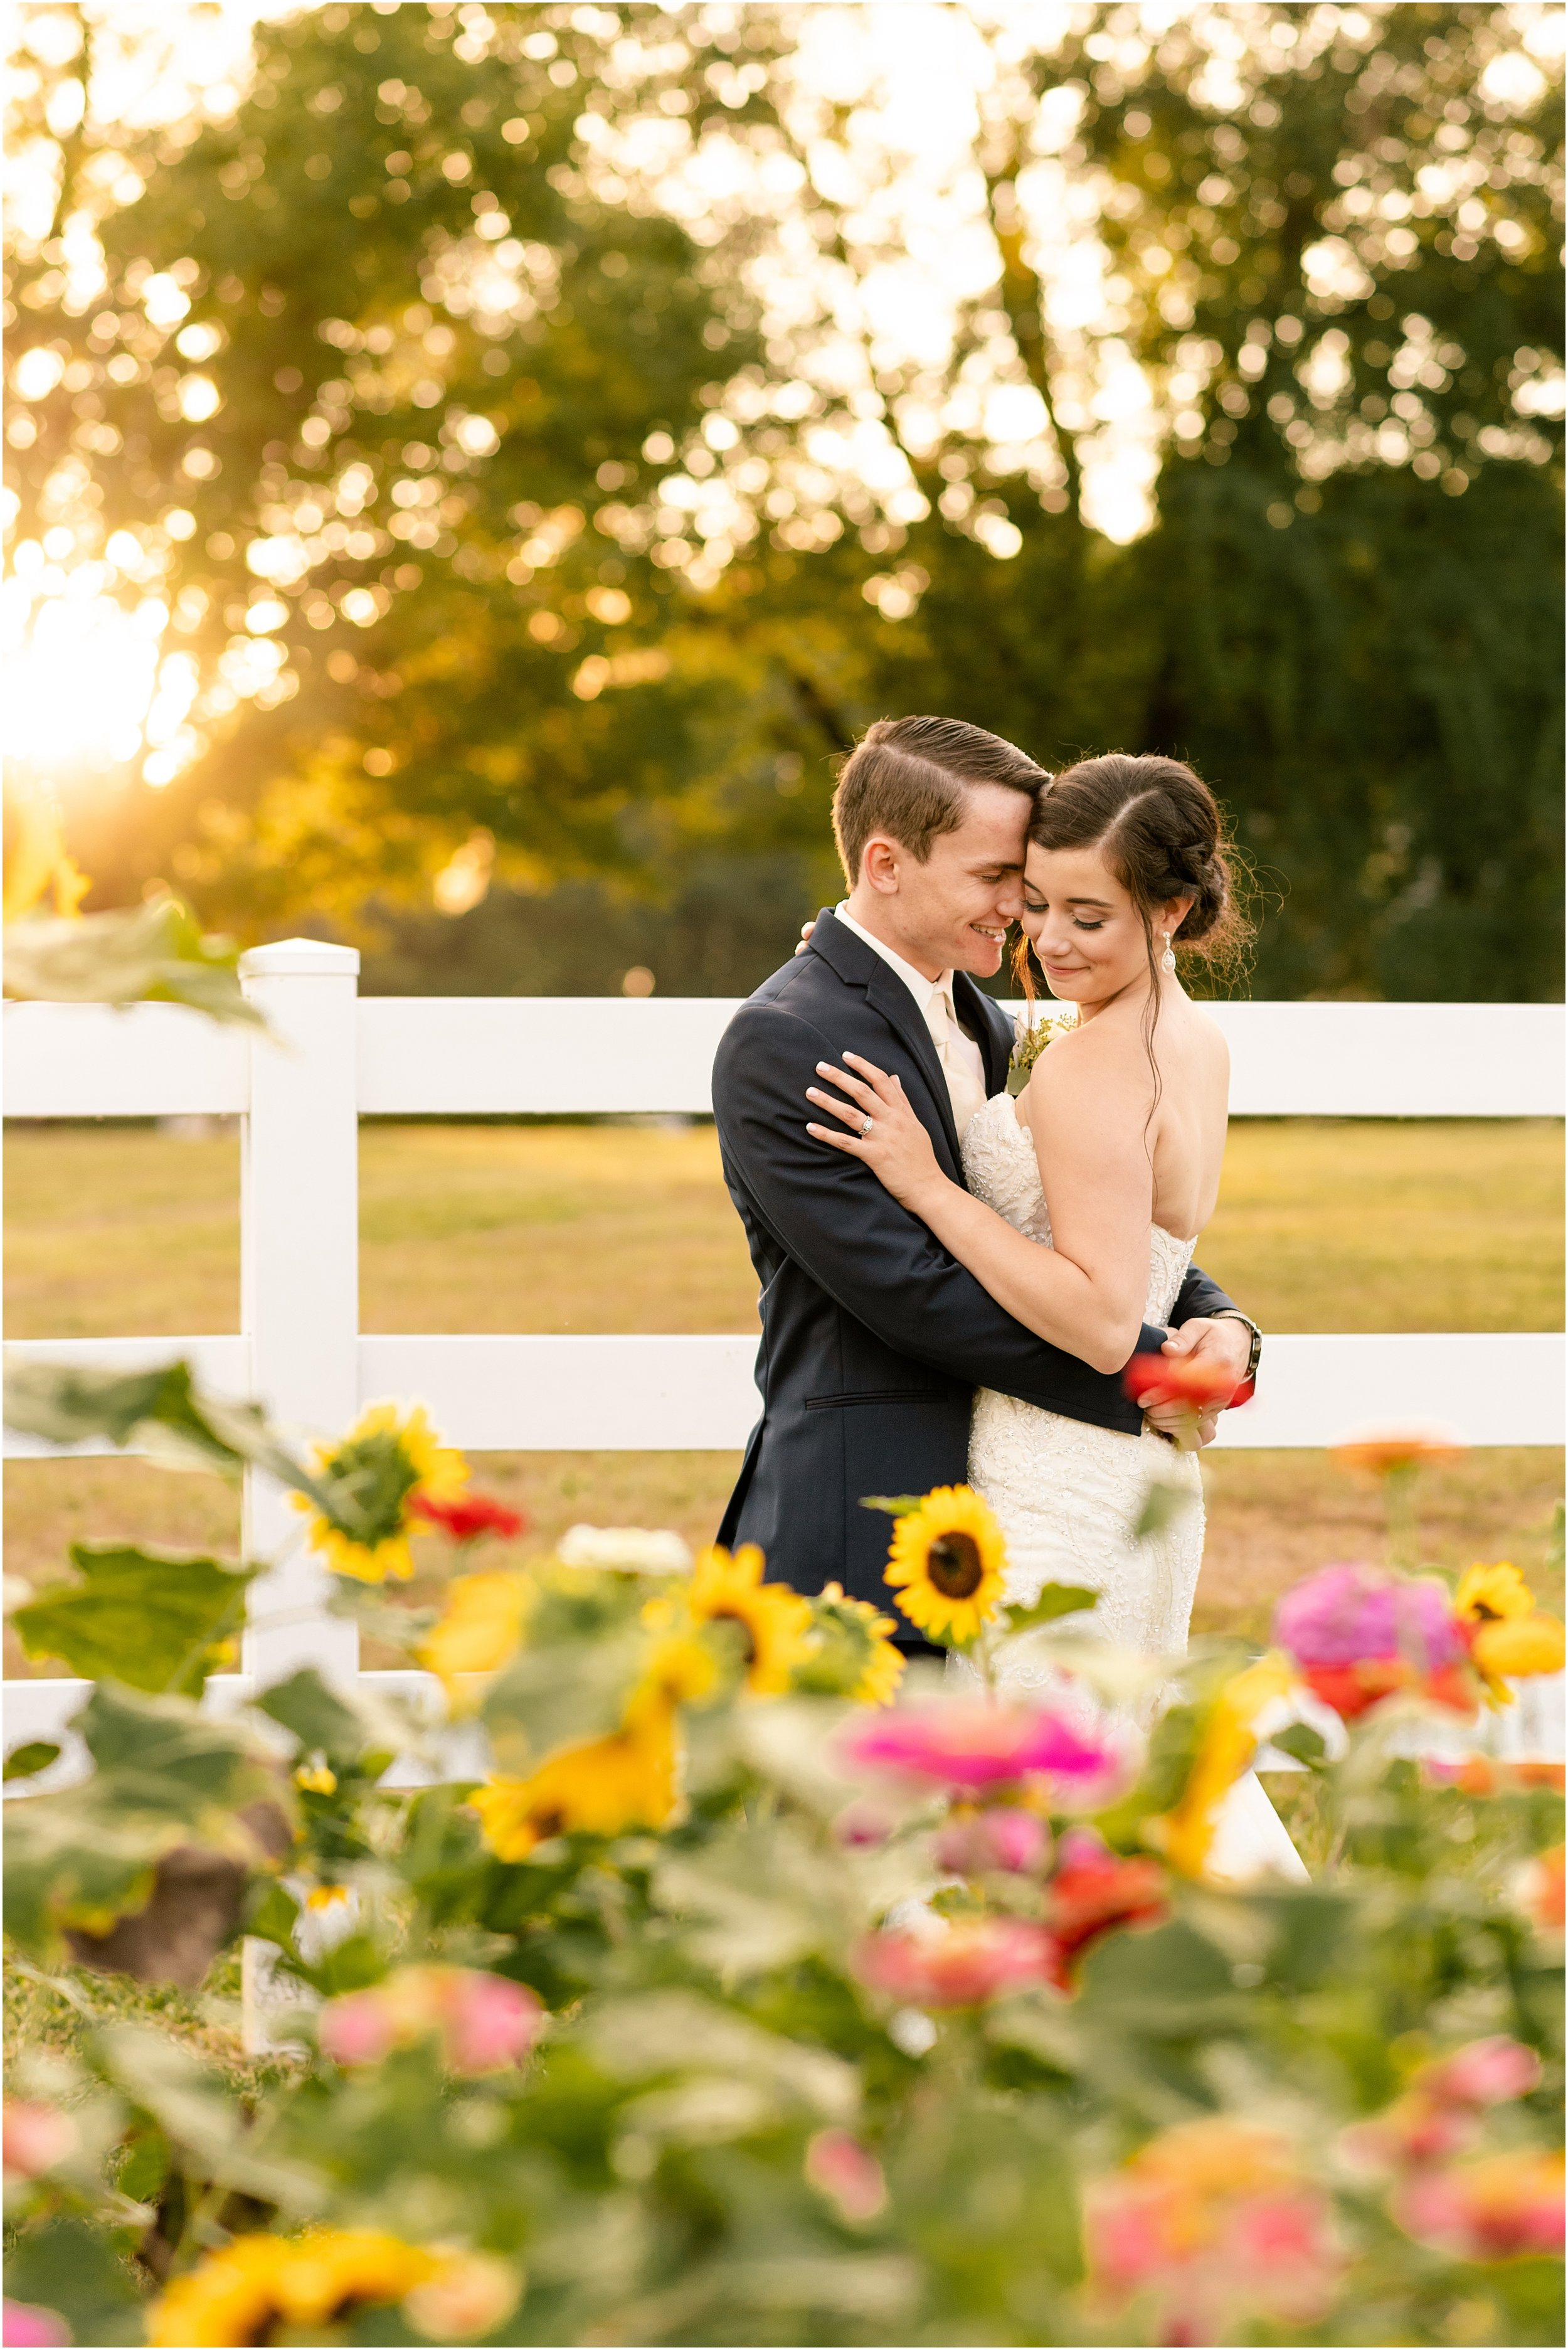 hannah leigh photography Pond View Farm Wedding White Hall MD_3684.jpg